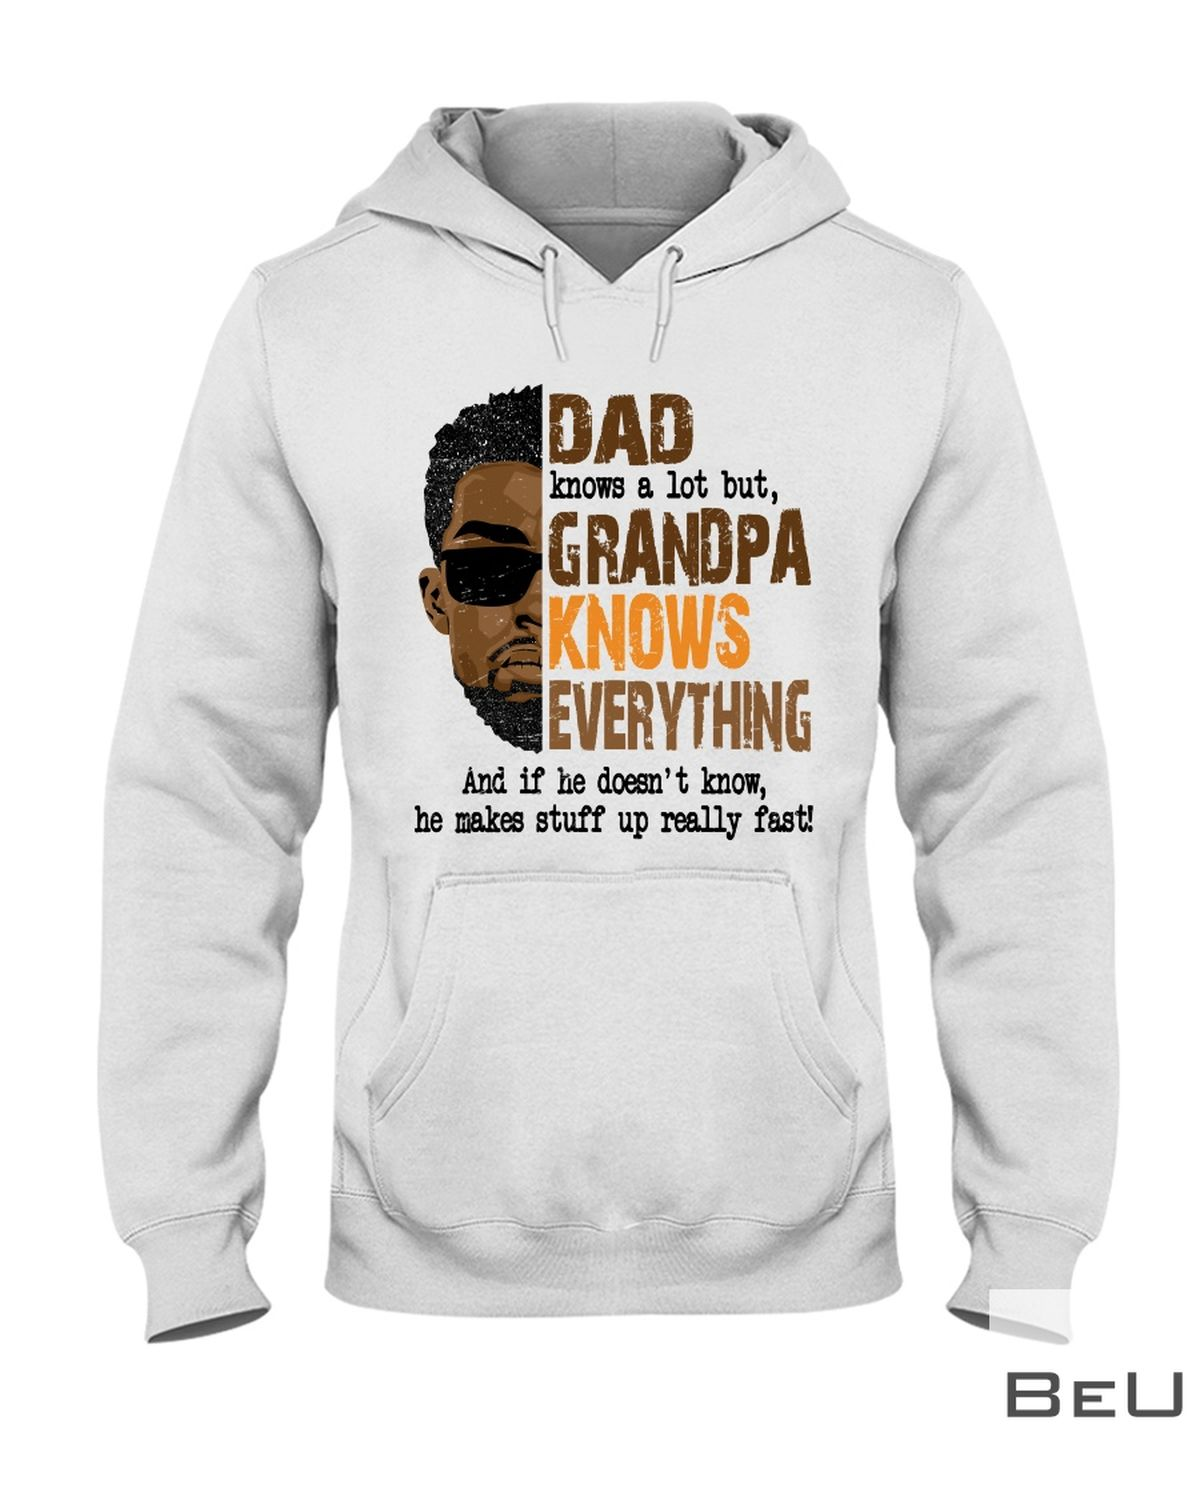 Black Dad Knows A Lot But Grandpa Knows Everything Shirtz